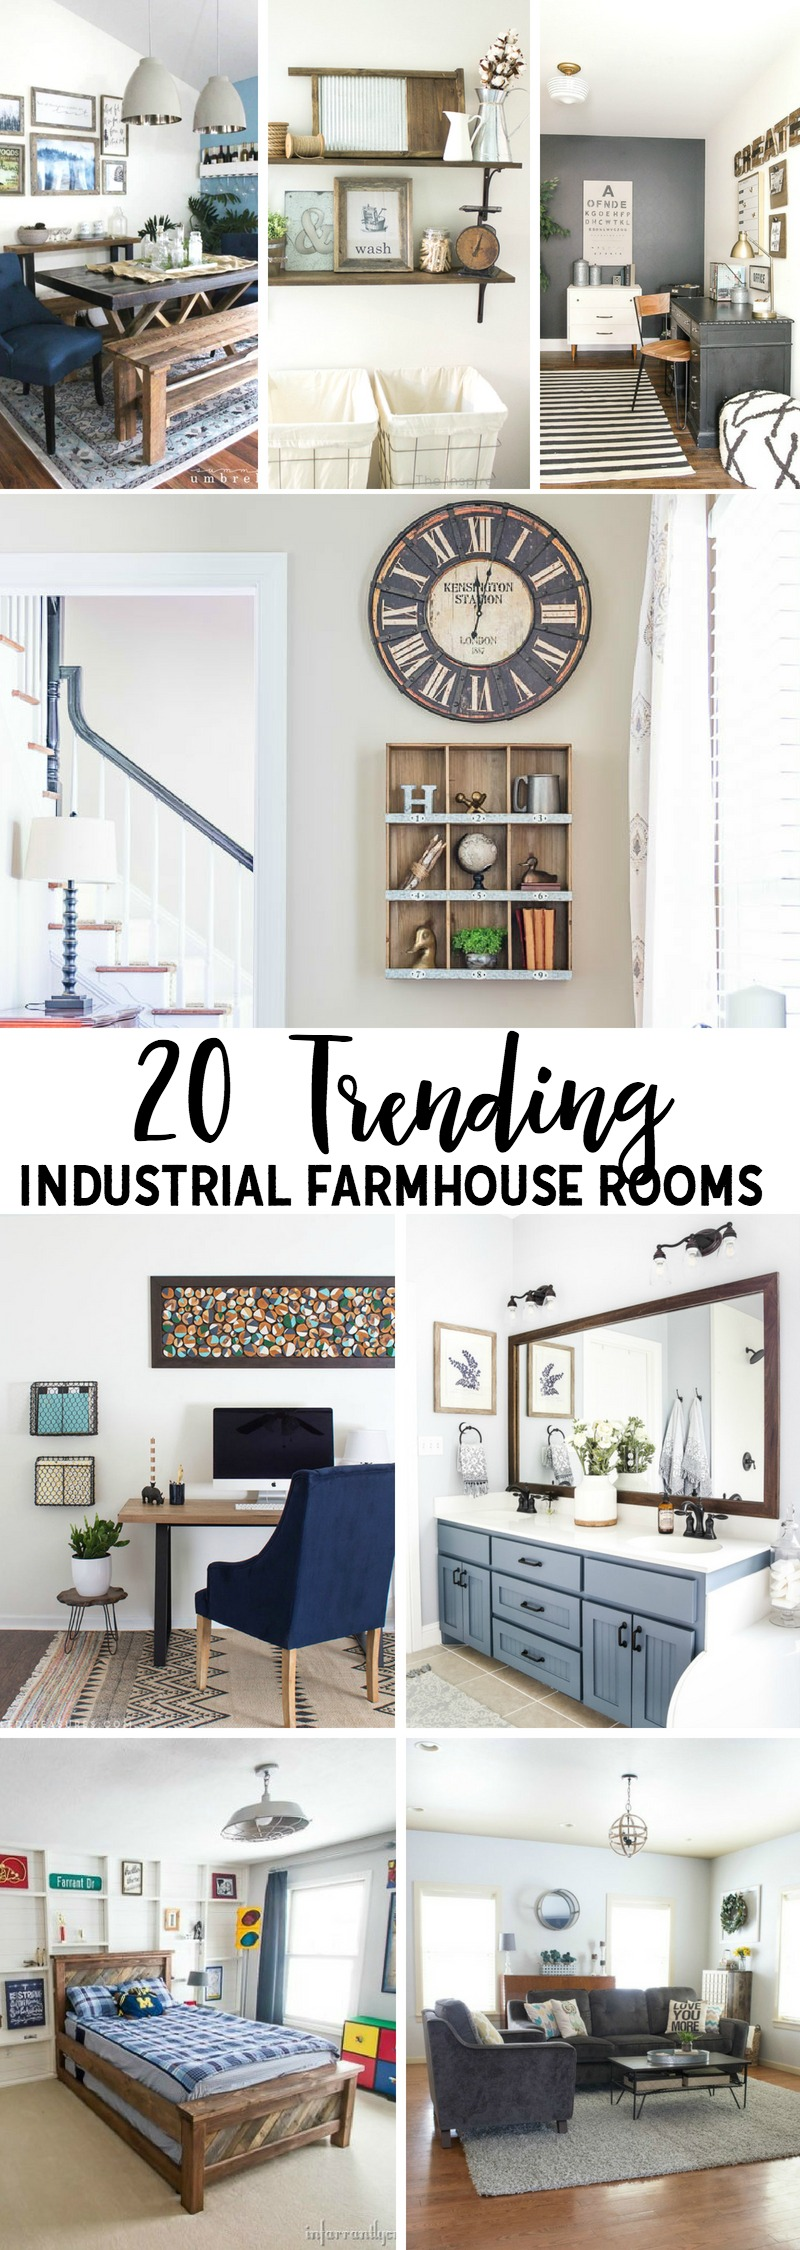 20 Trending Industrial Farmhouse Rooms